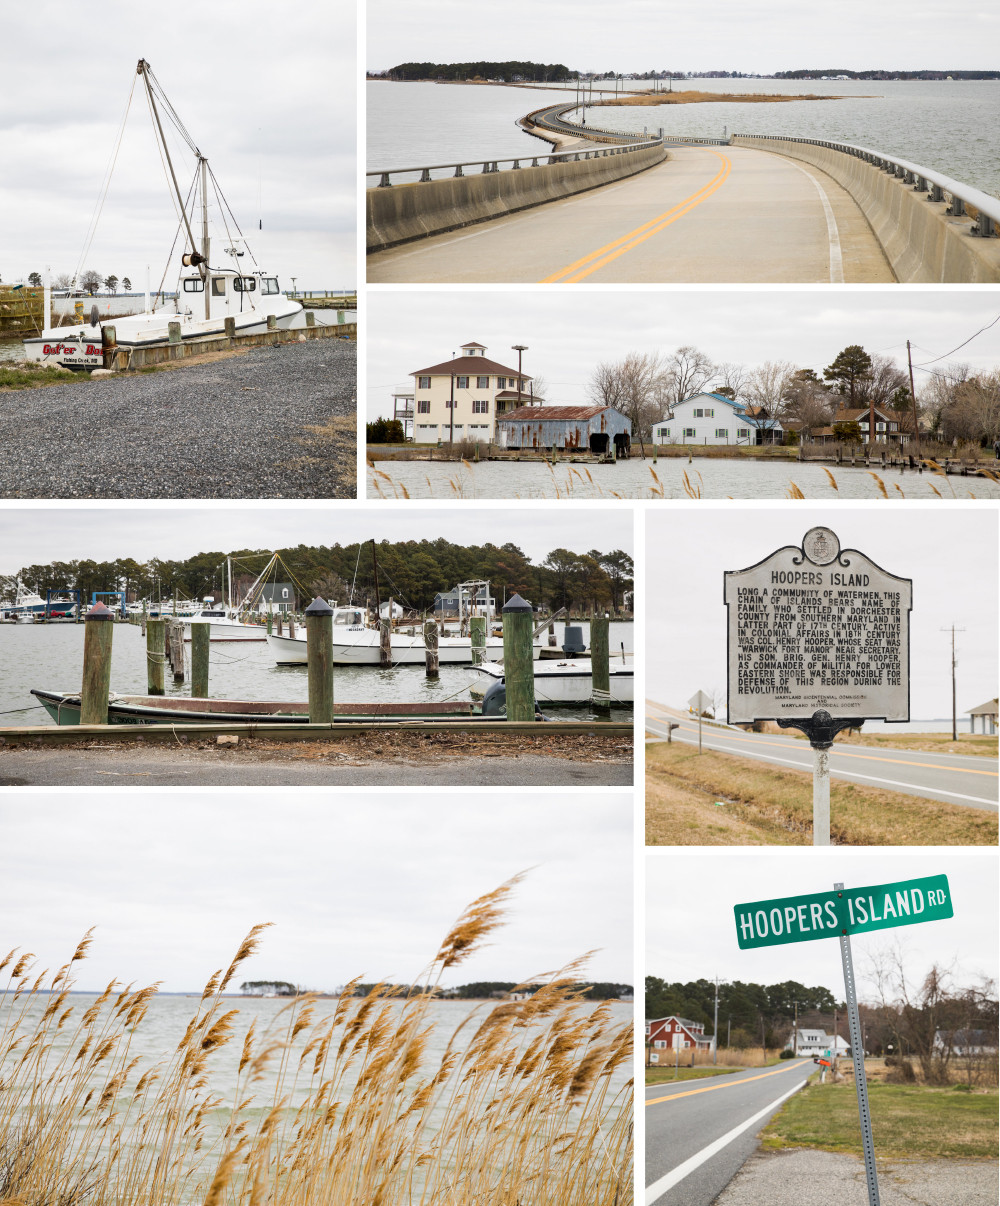 Dorchester County: Hoopers Island